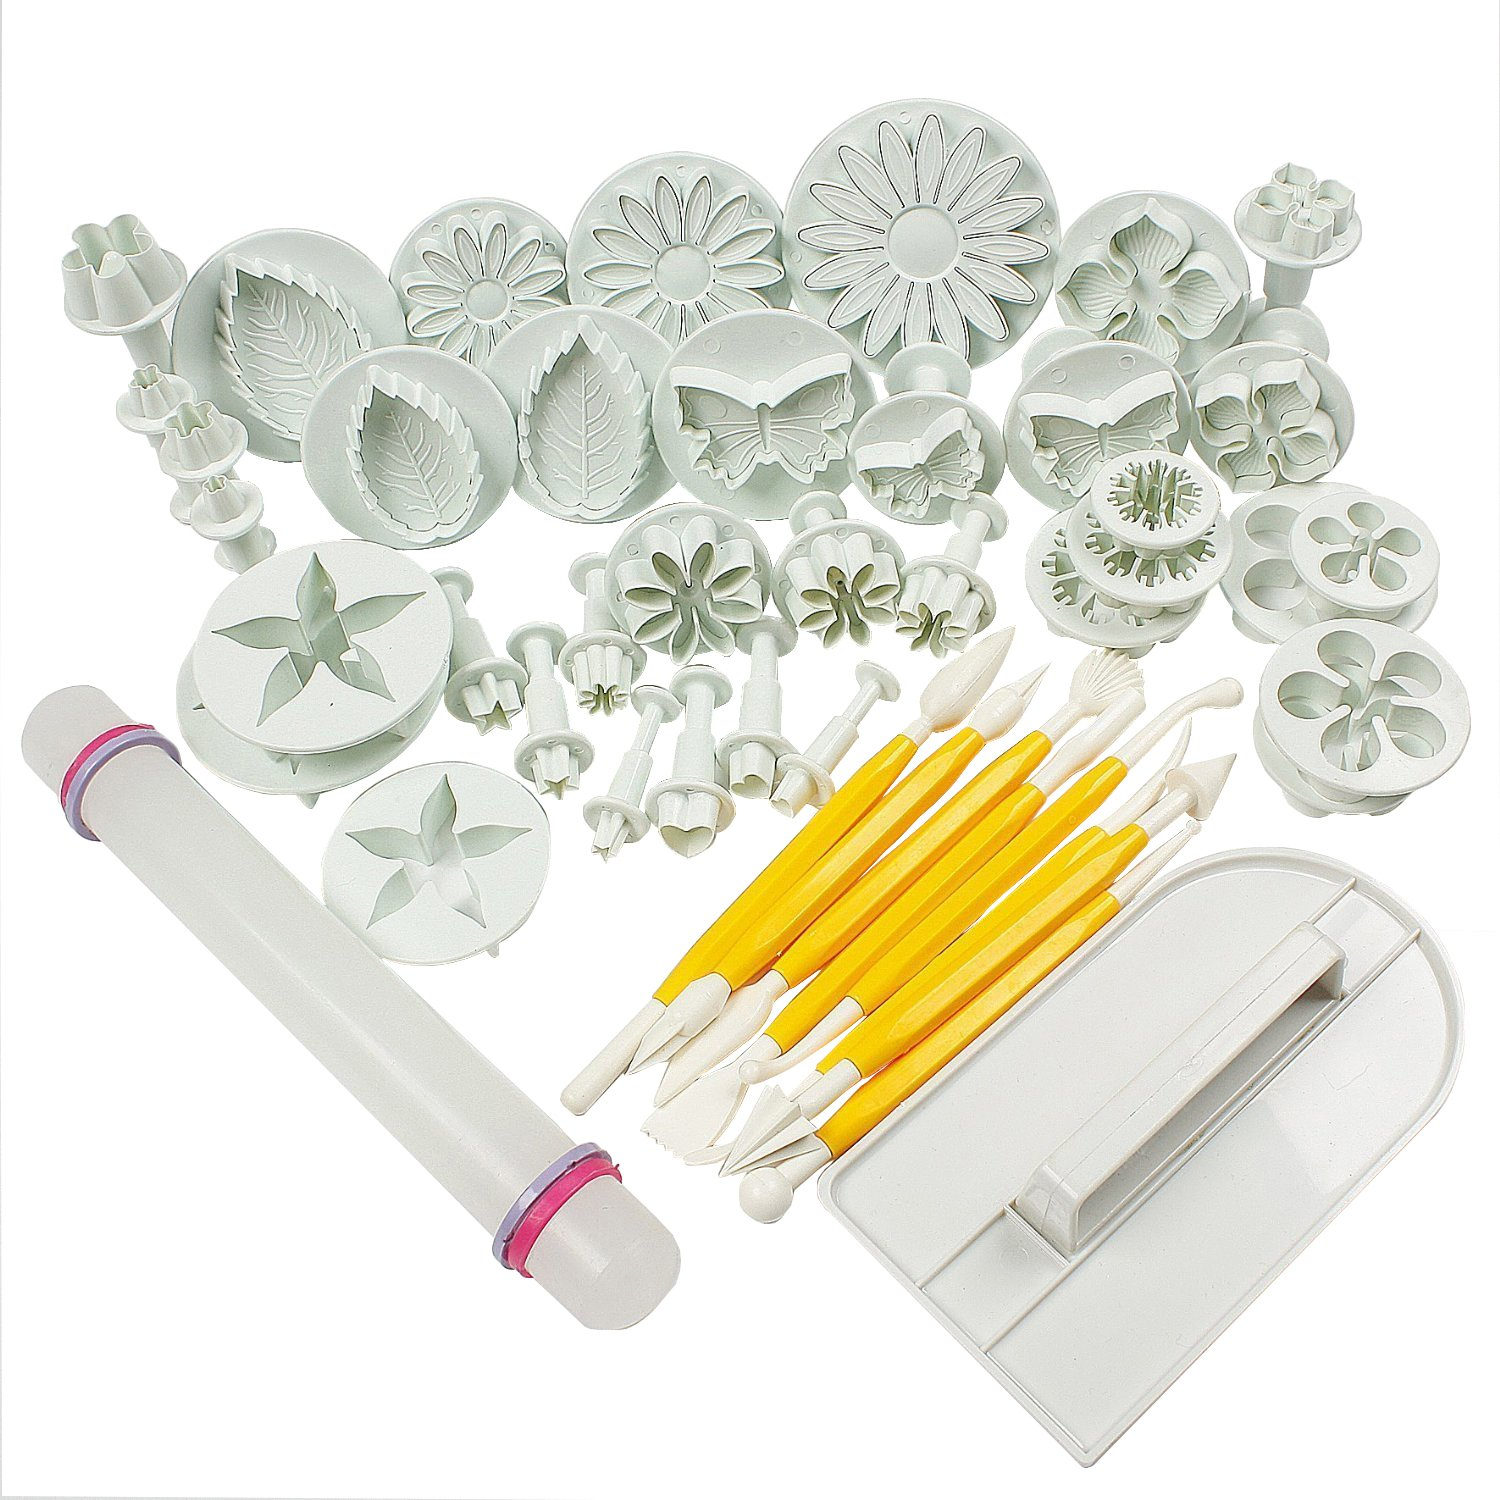 HOSL Cake Tools 14 sets (46pcs) Flower Fondant Cake Sugarcraft Decorating Kit Cookie Mould Icing Plunger Cutter Tool, White by HOSL